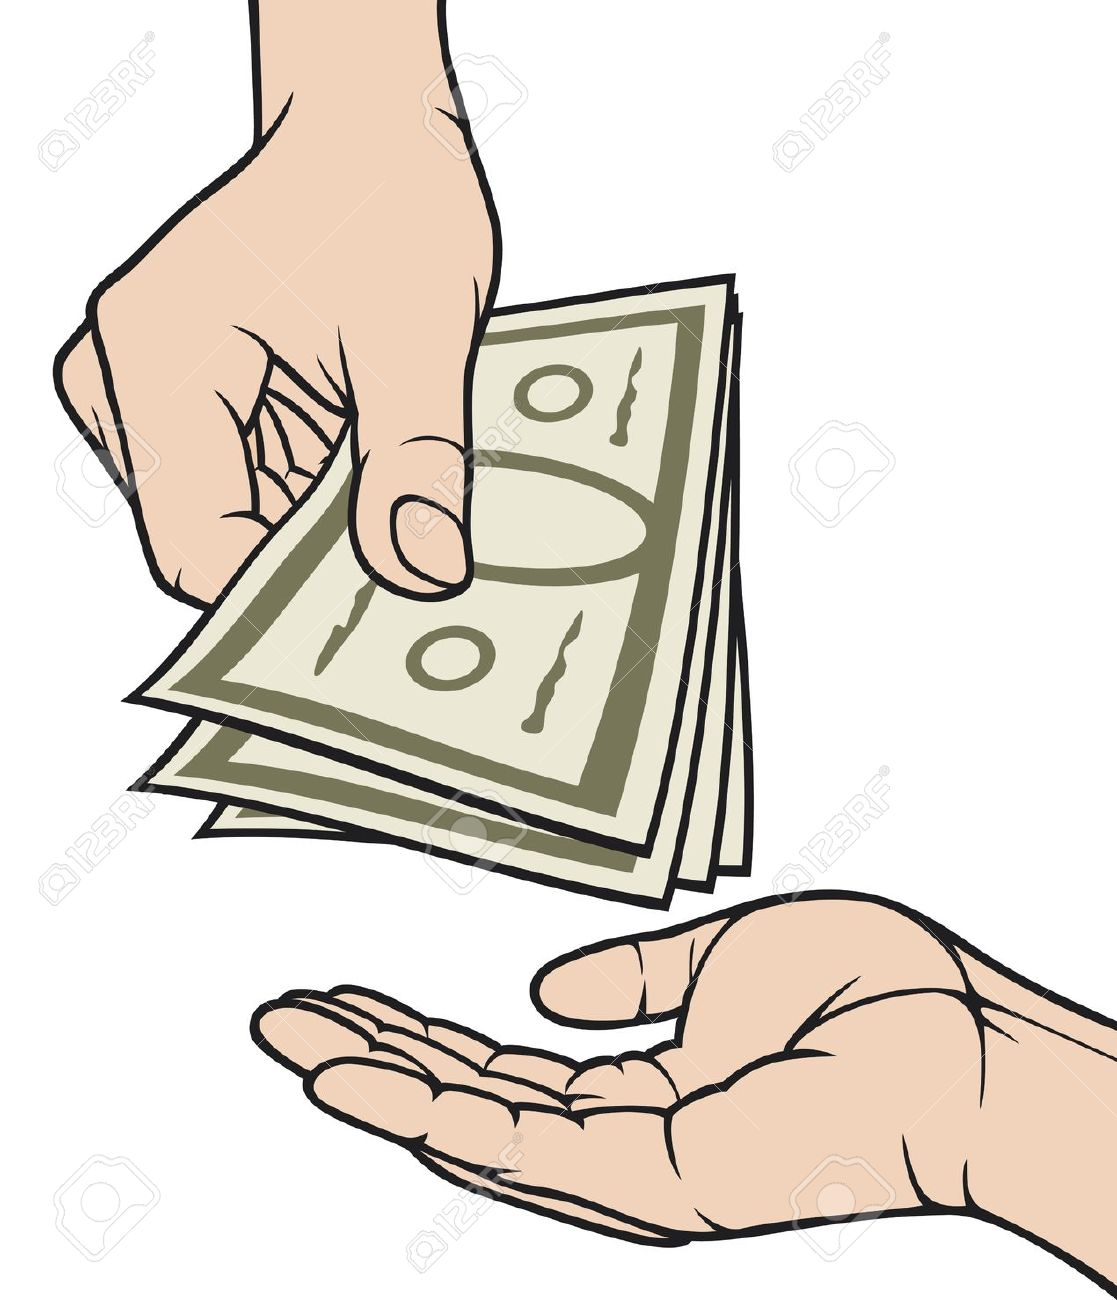 Cash In Hand Clipart.